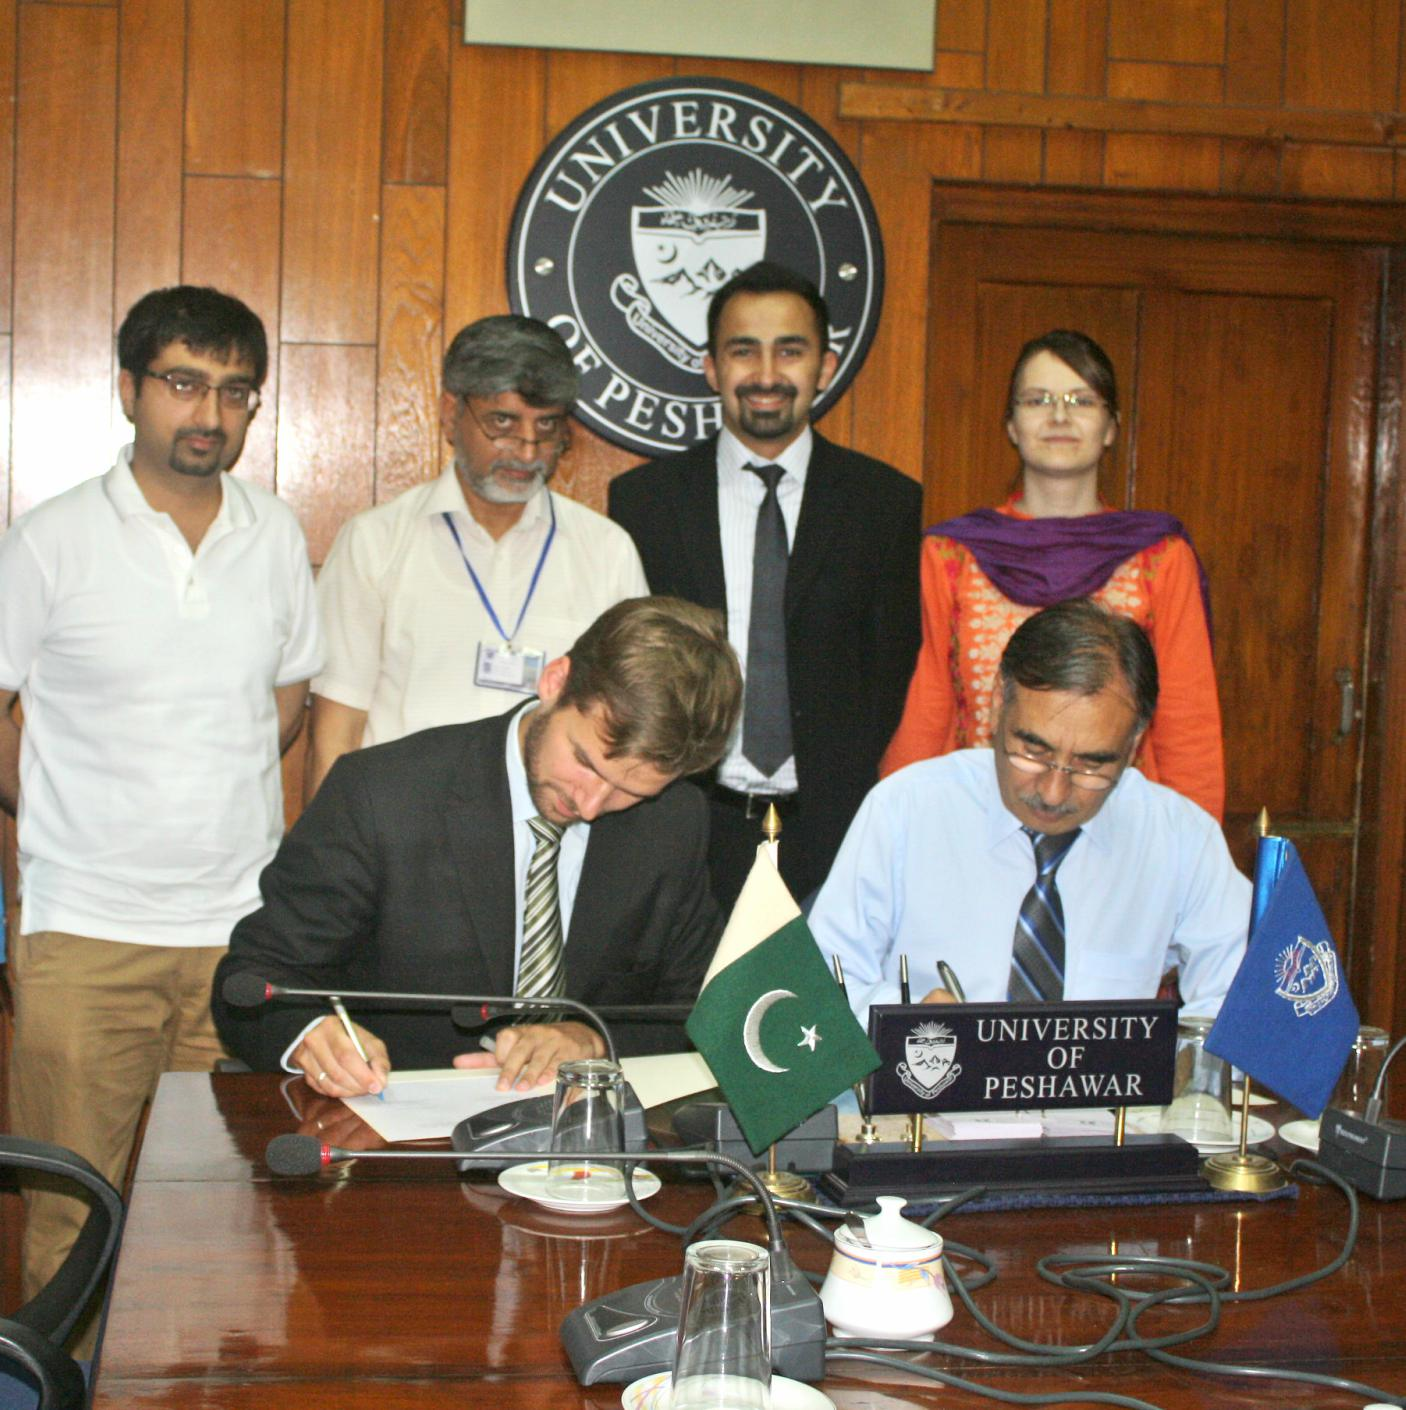 Vice Chancellor UoP Prof. Dr. Muhammad Rasul Jan and Kristof W. Duwaerts of Hans Seidel Foundation Signing MoU at the UoP